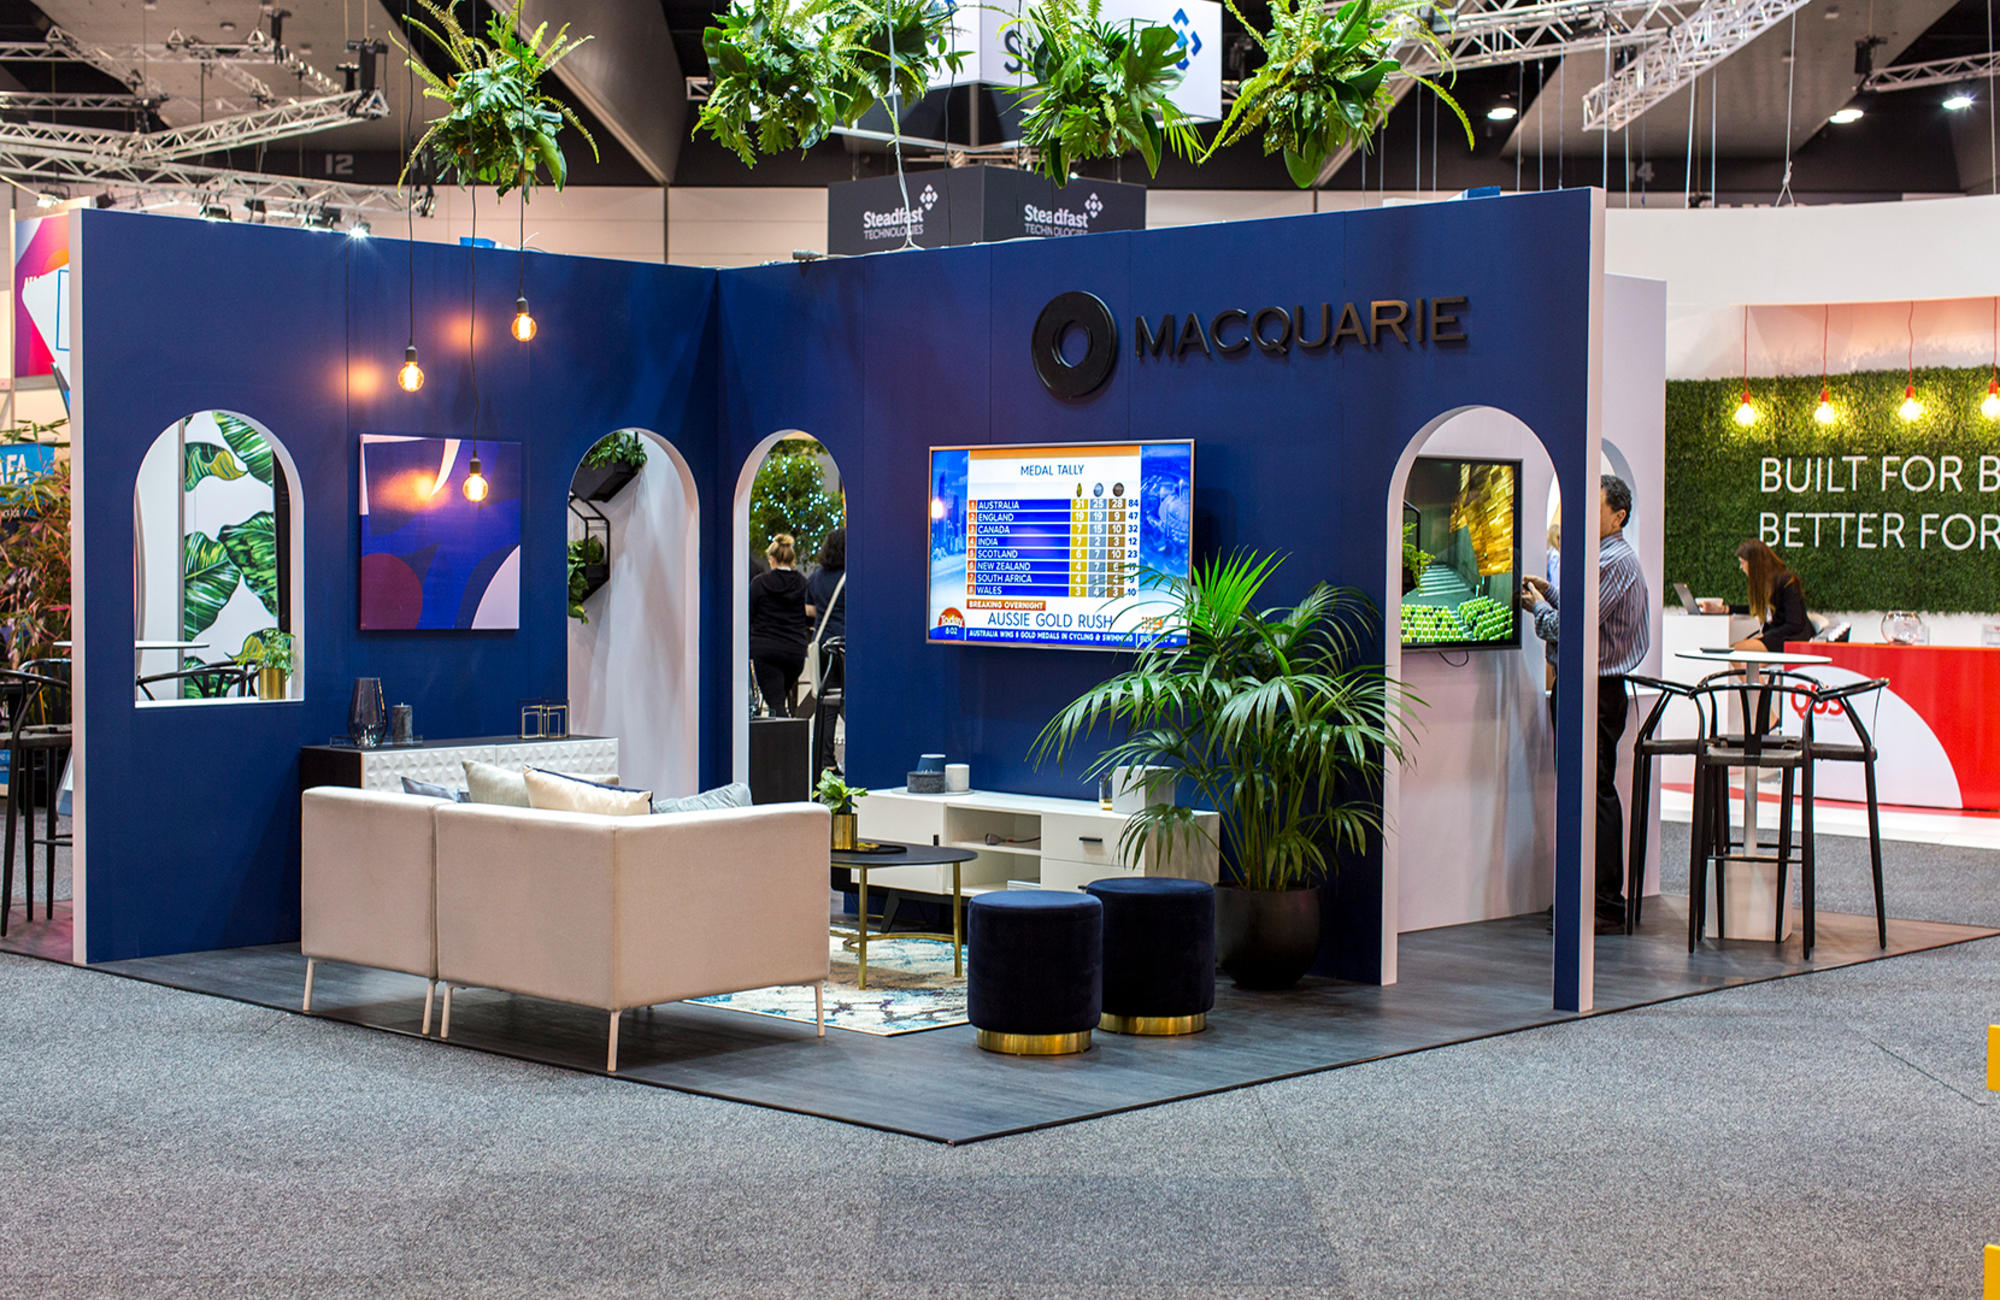 Exhibition Stand Hire Newcastle : Hire & rental services for exhibitions harry the hirer